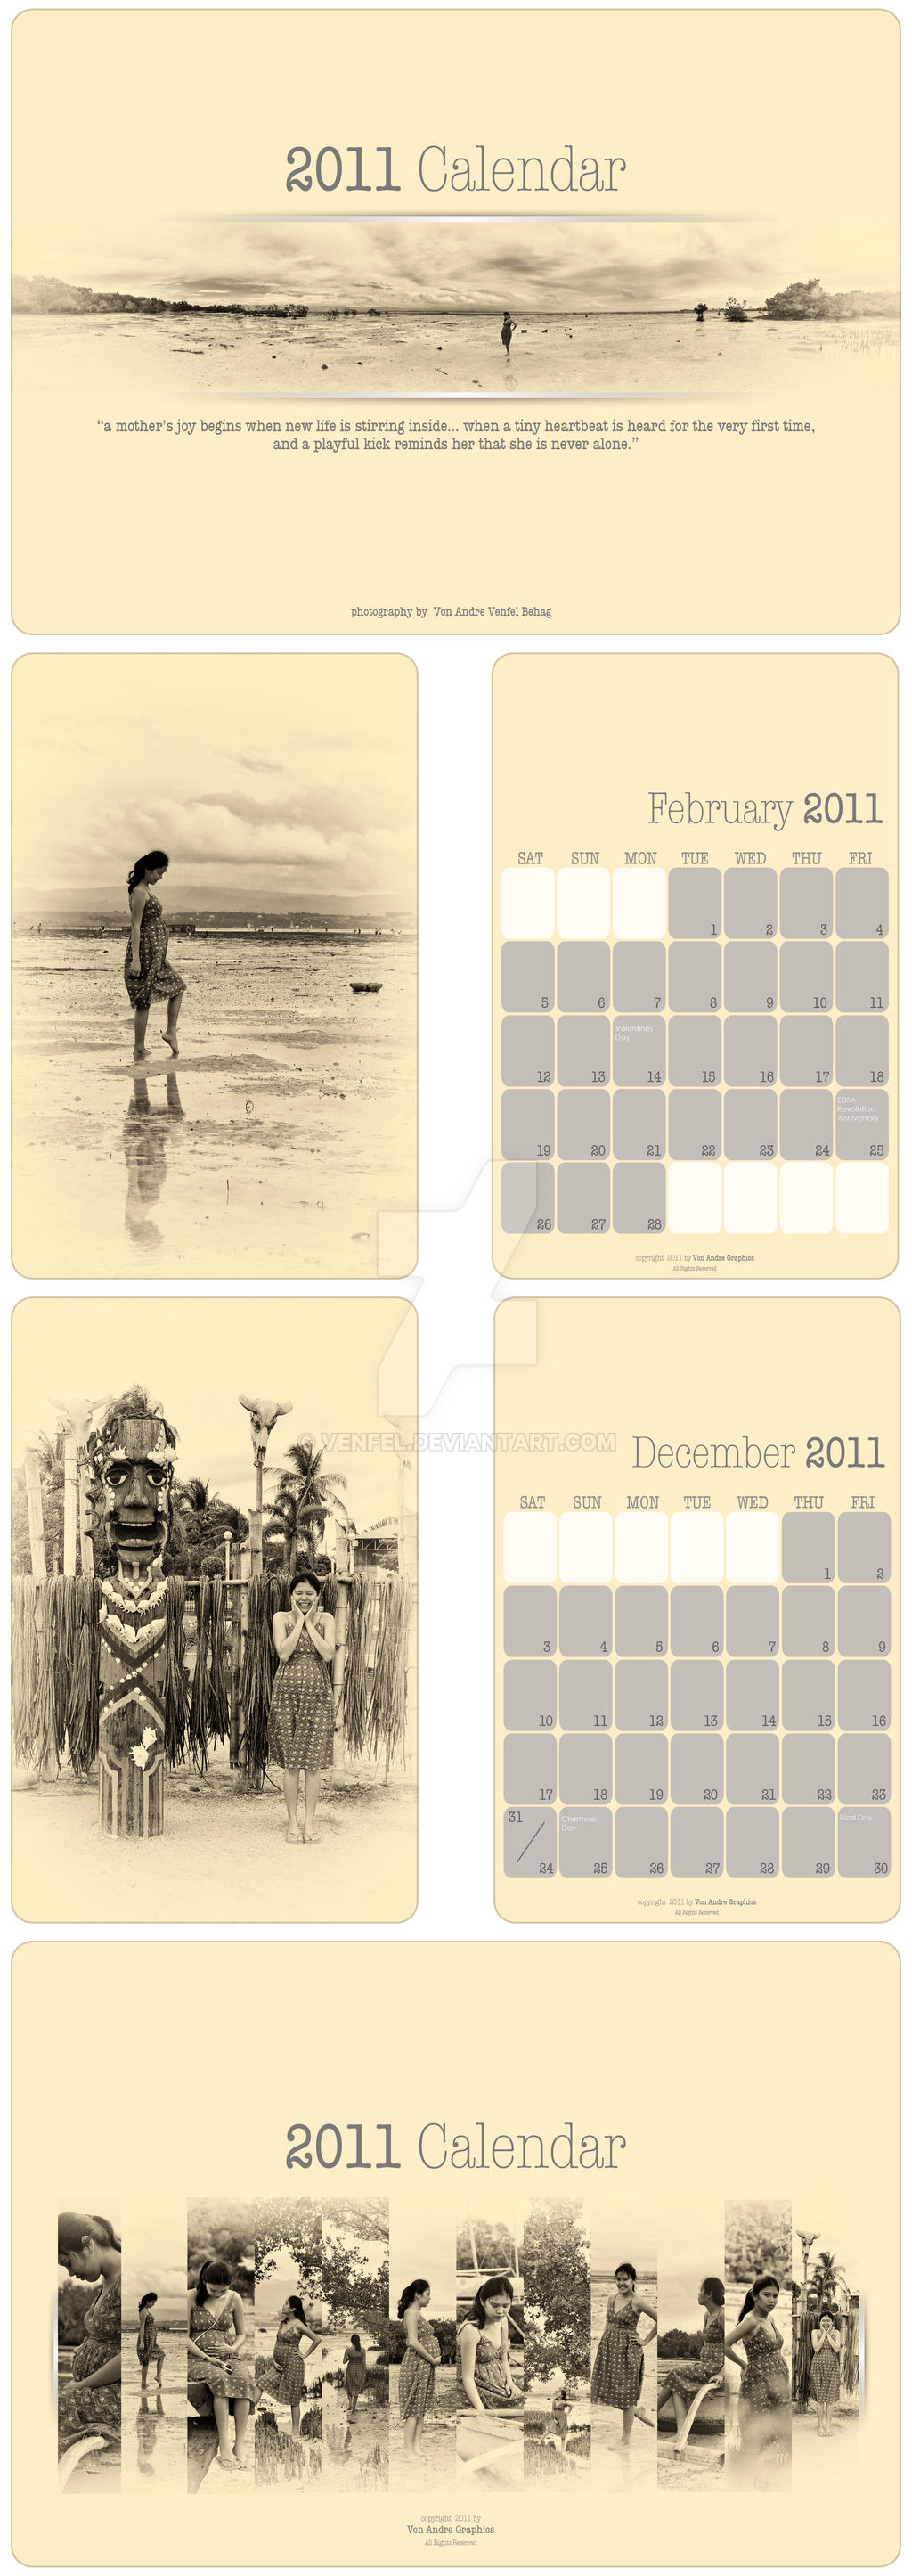 2011 calendar by venfel on deviantart